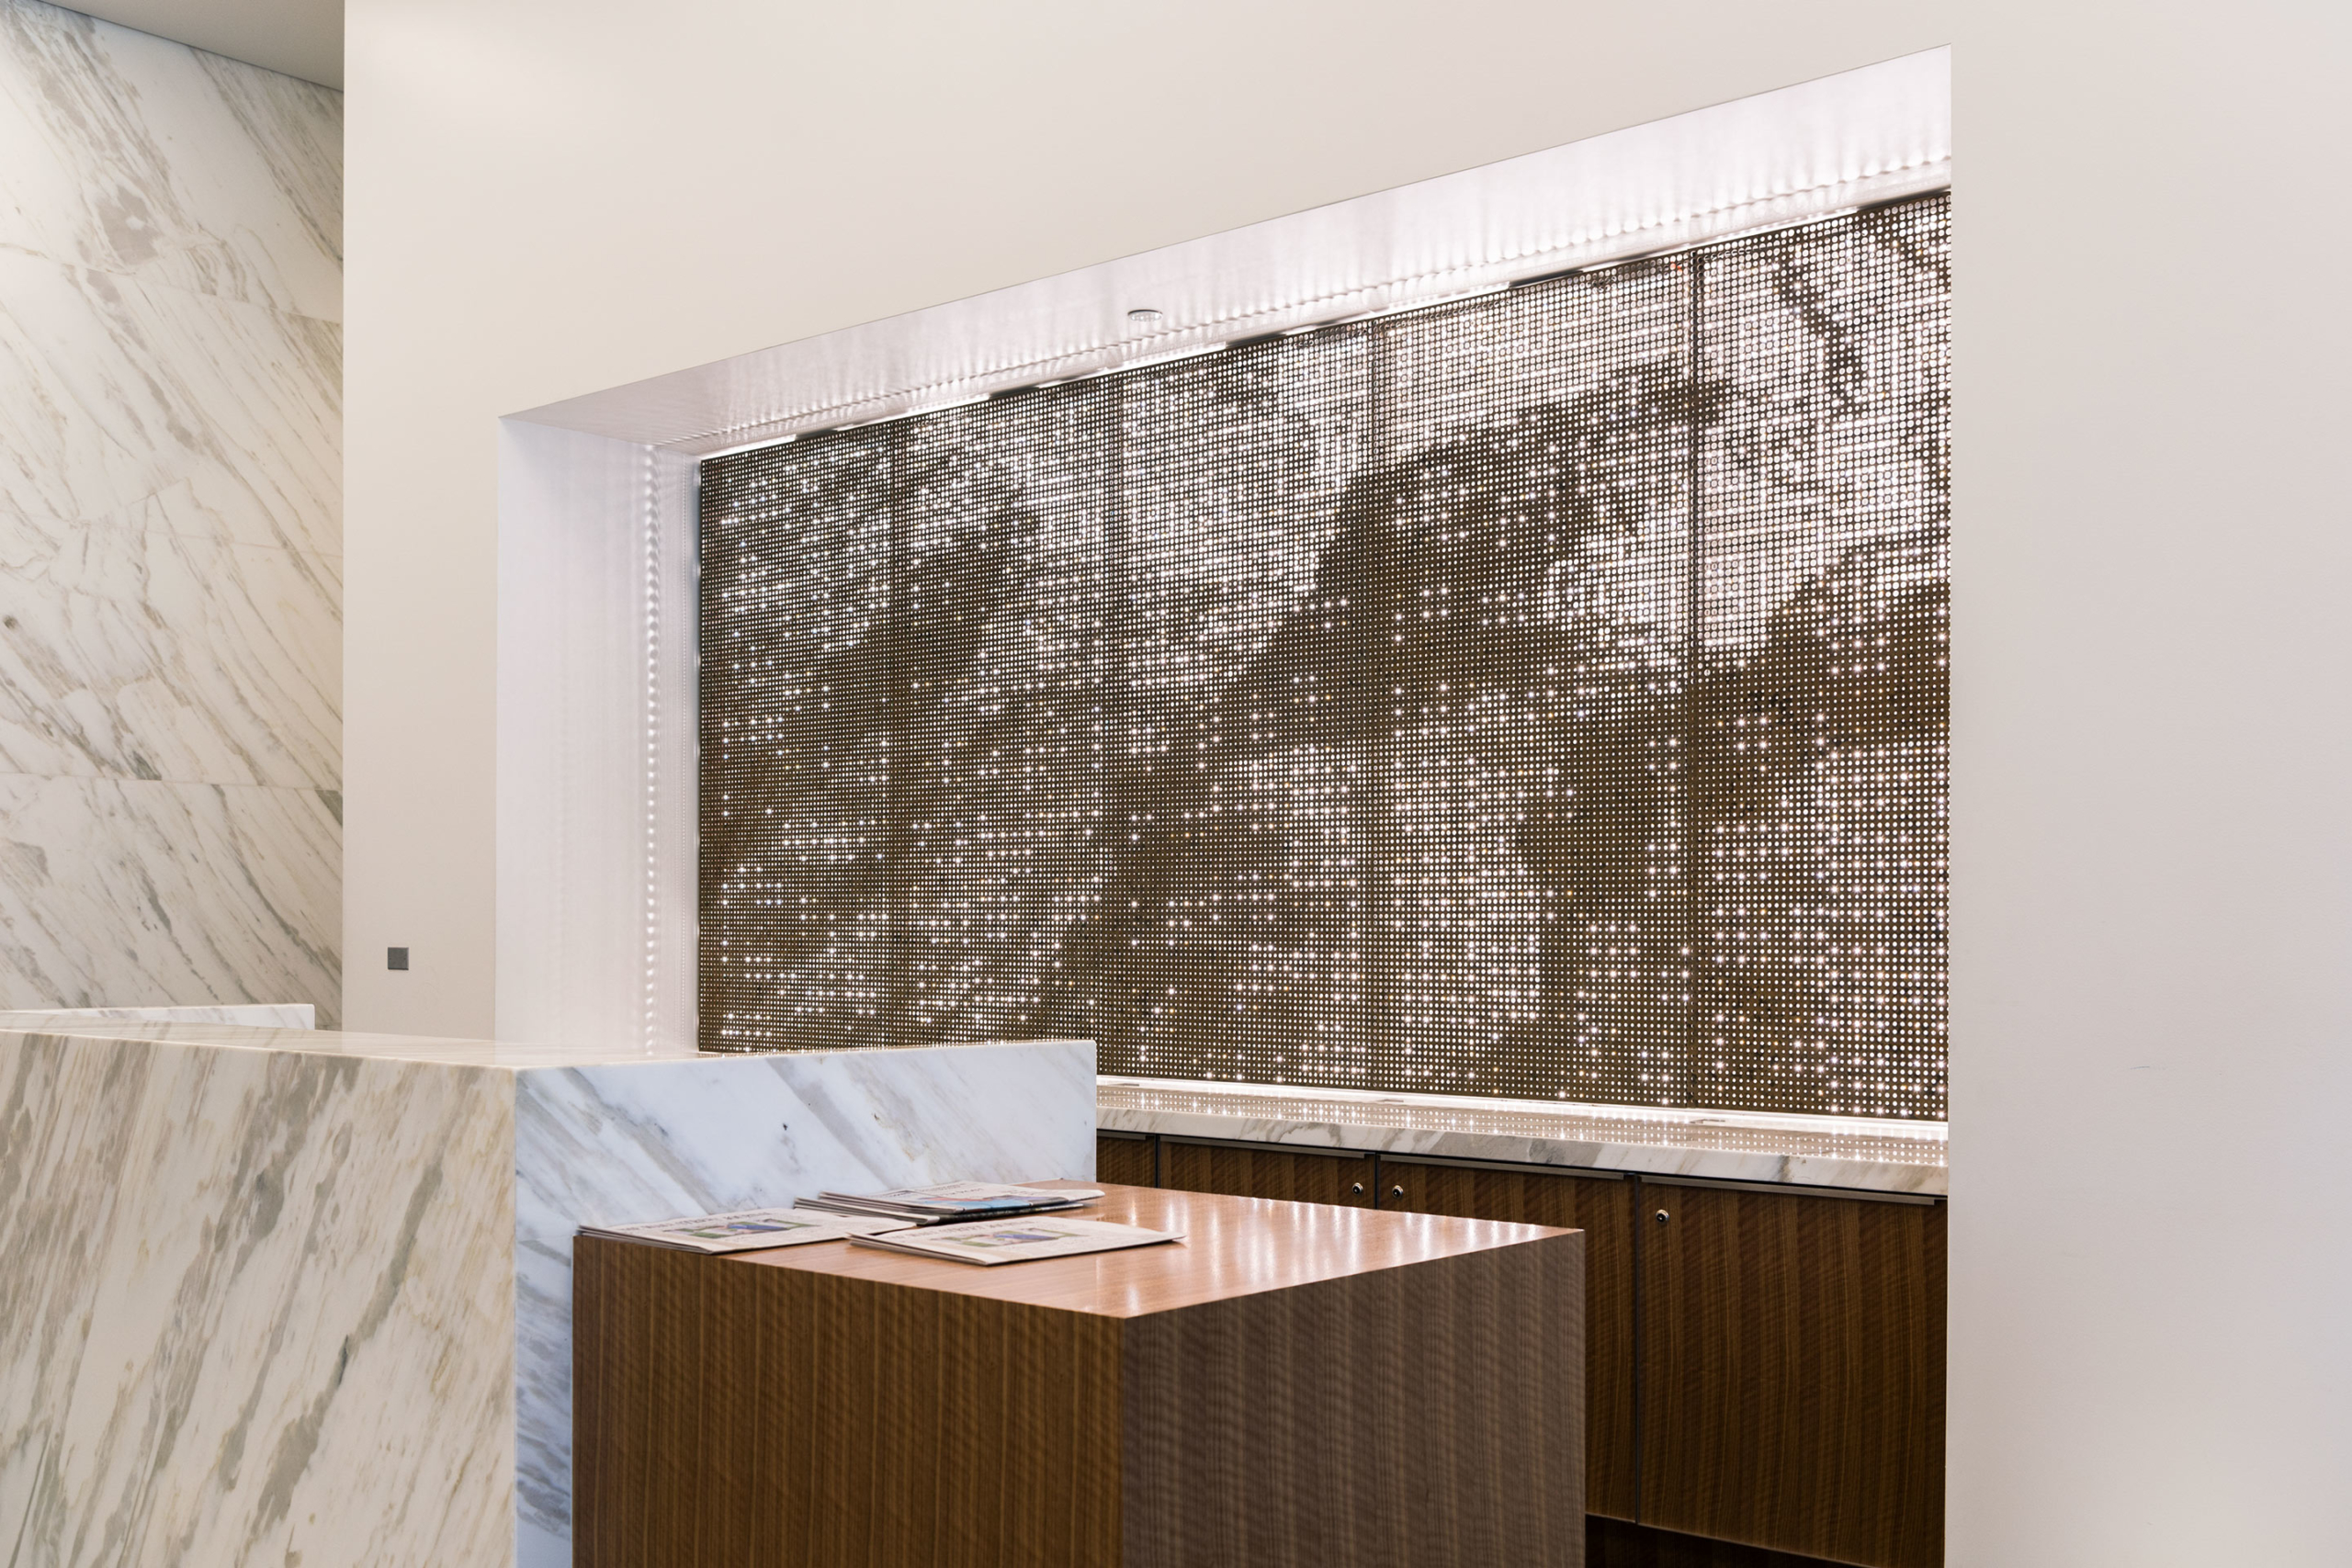 Interior perforated metal at the front desk for 1401 Lawrence.